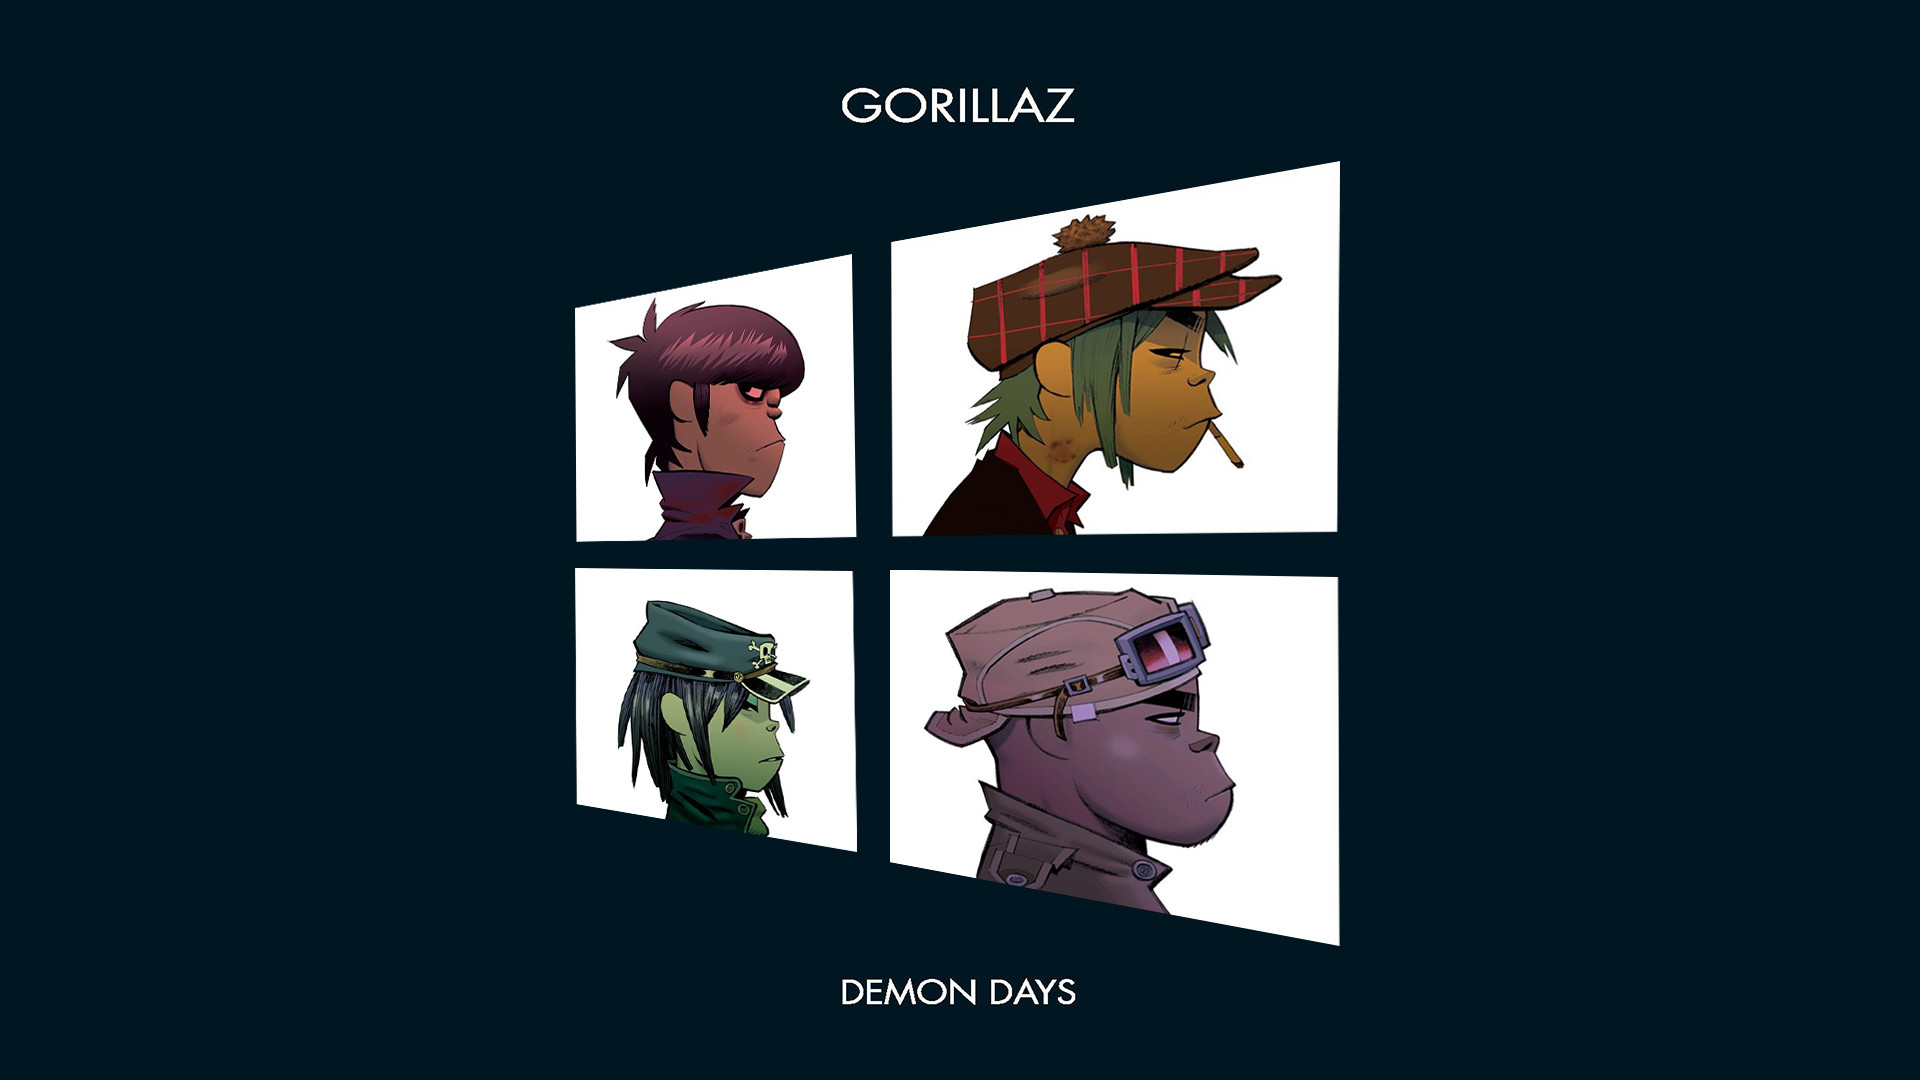 Gorillaz The Fall Wallpaper Feel Good Inc Wallpaper 72 Images